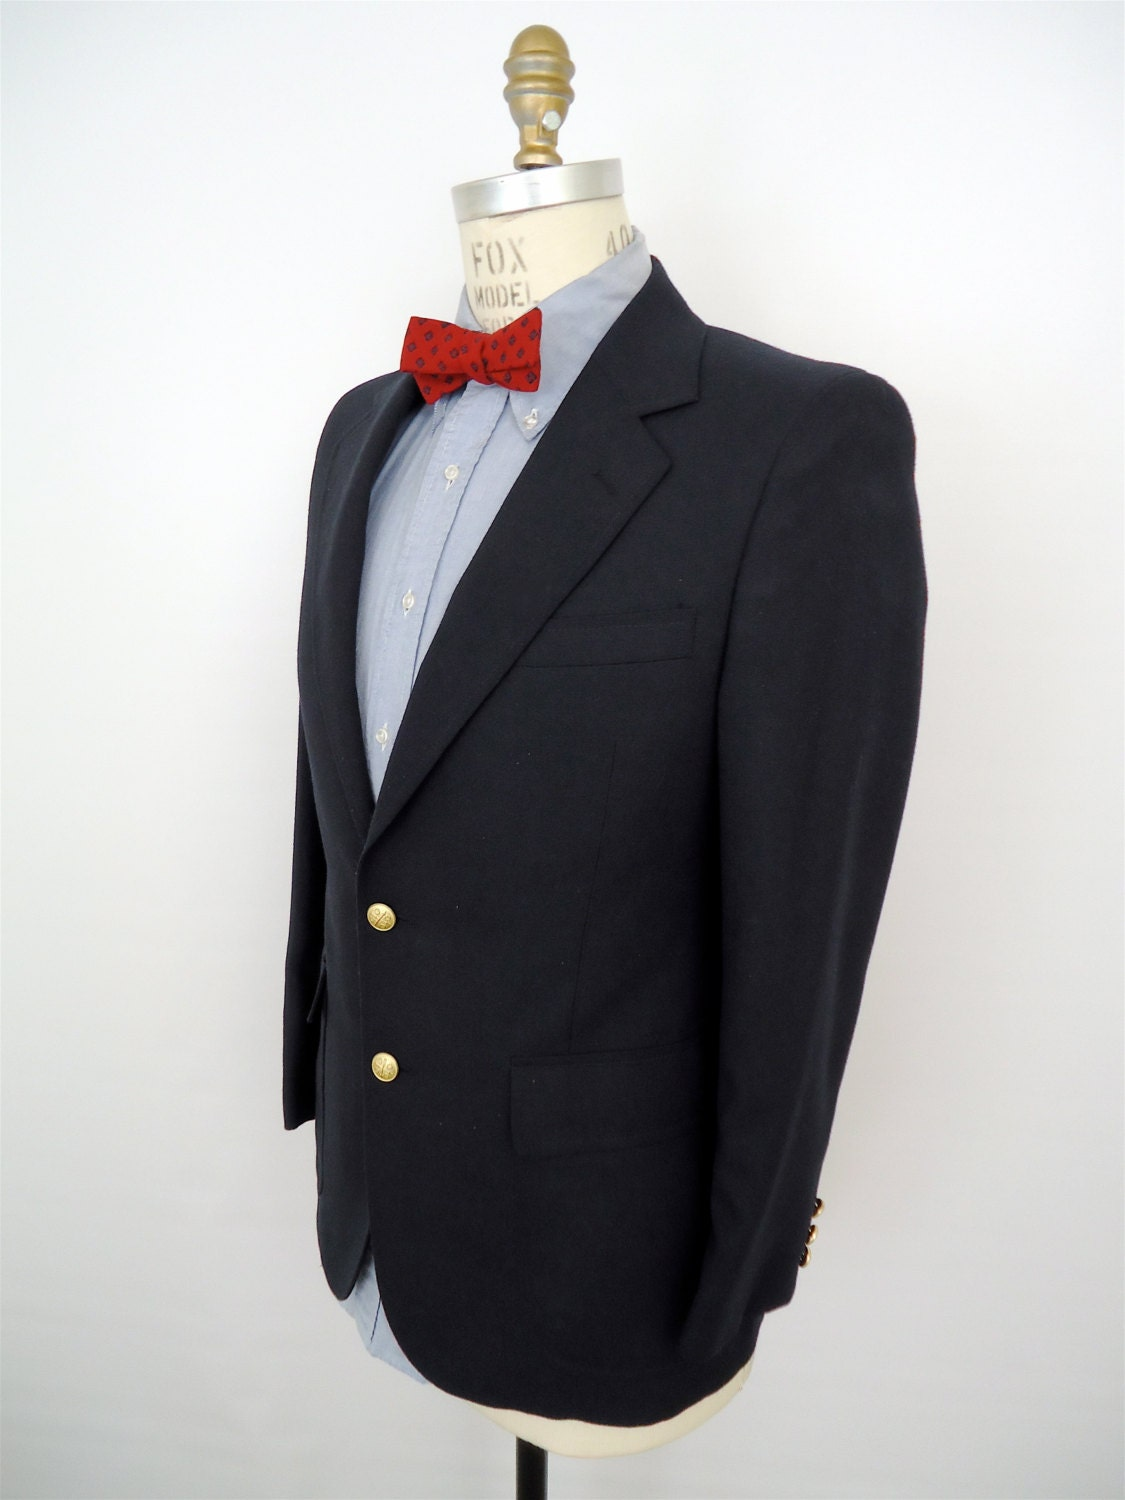 The sport coat was one of the most casual jackets a man could own. Sport coats don't hold the same position in menswear today thanks to the development of athletic and specialty sporting clothes. They are now fantastic additions to your dress casual attire.